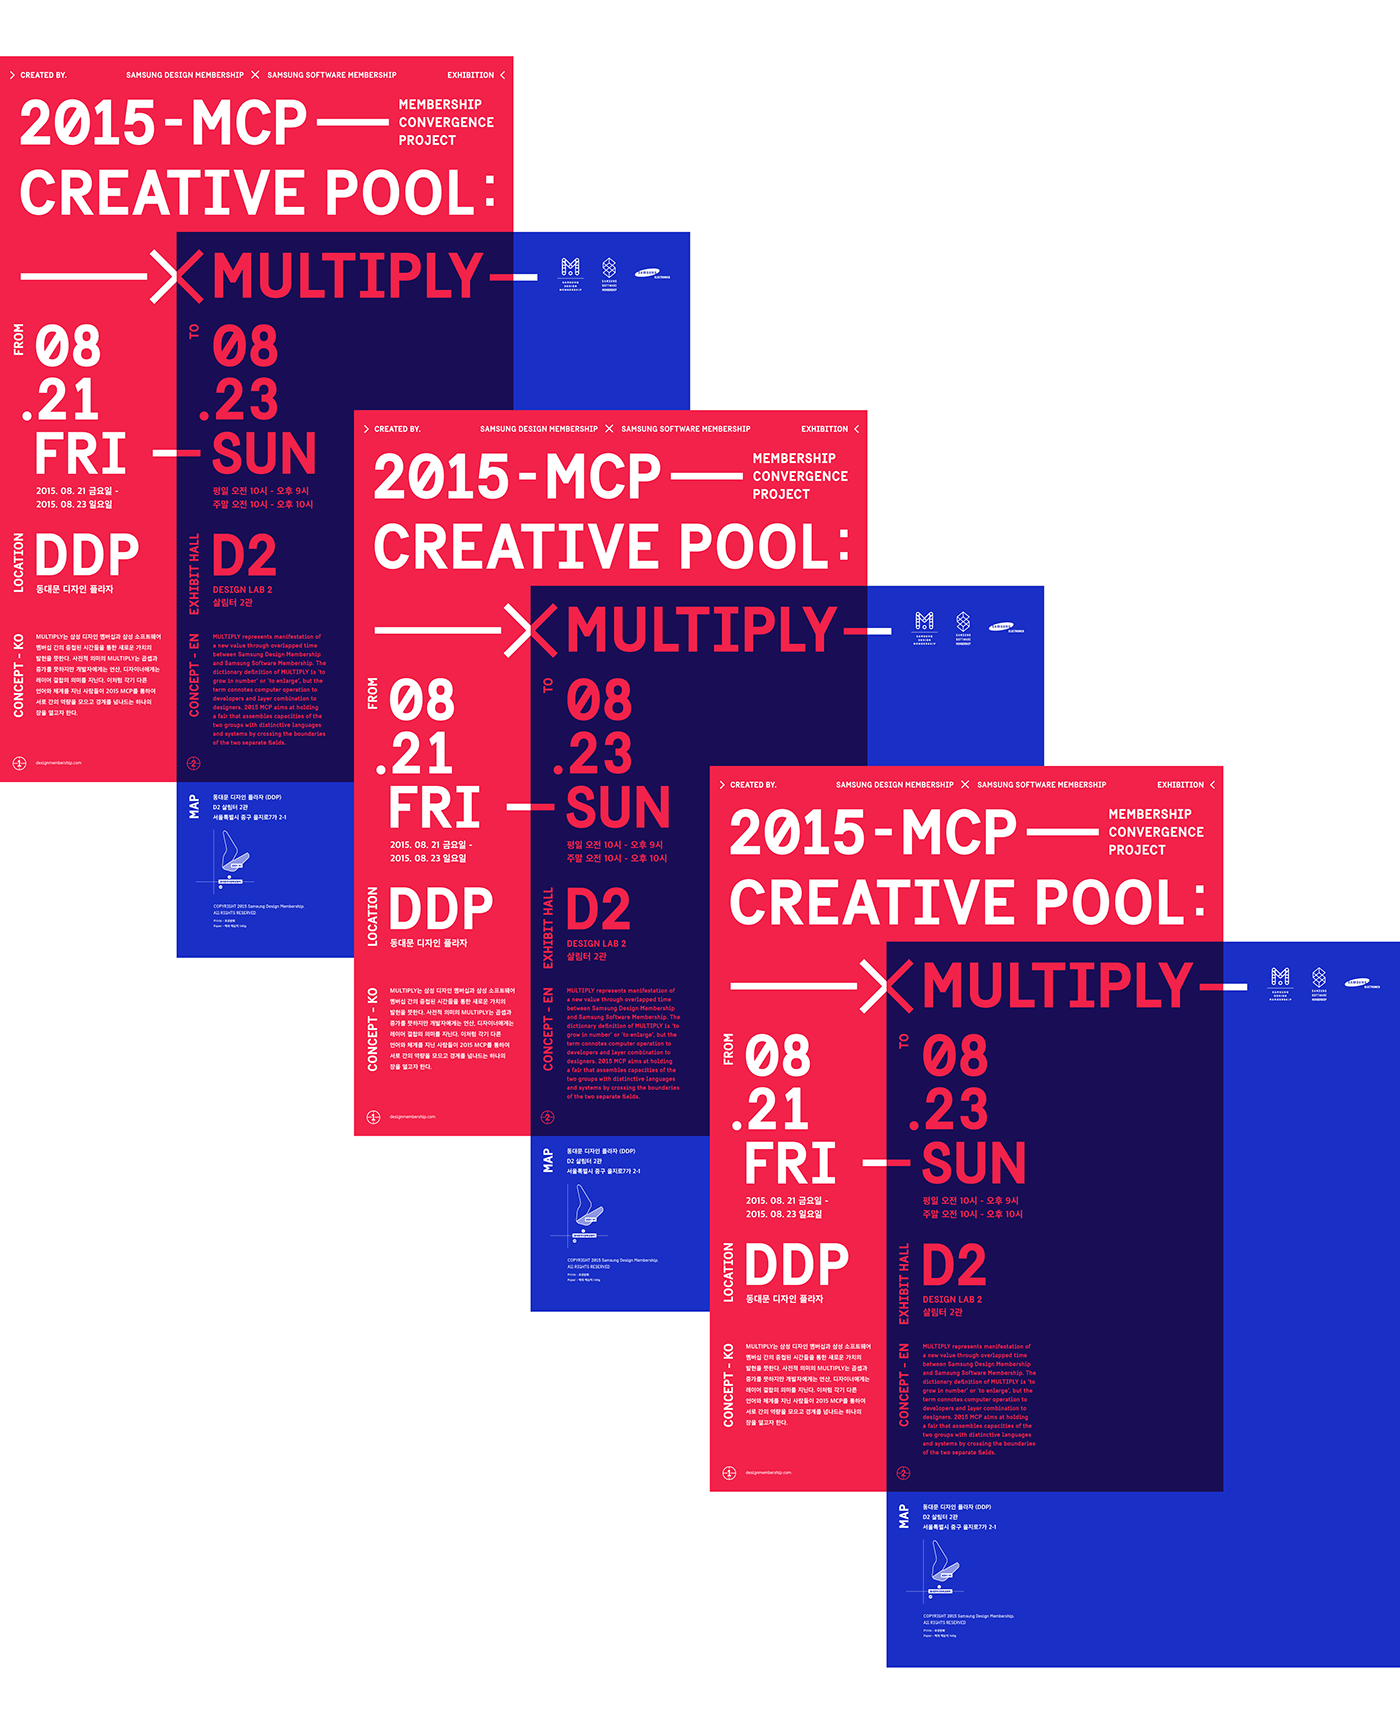 2015 MCP - MULTIPLY Exhibition 02